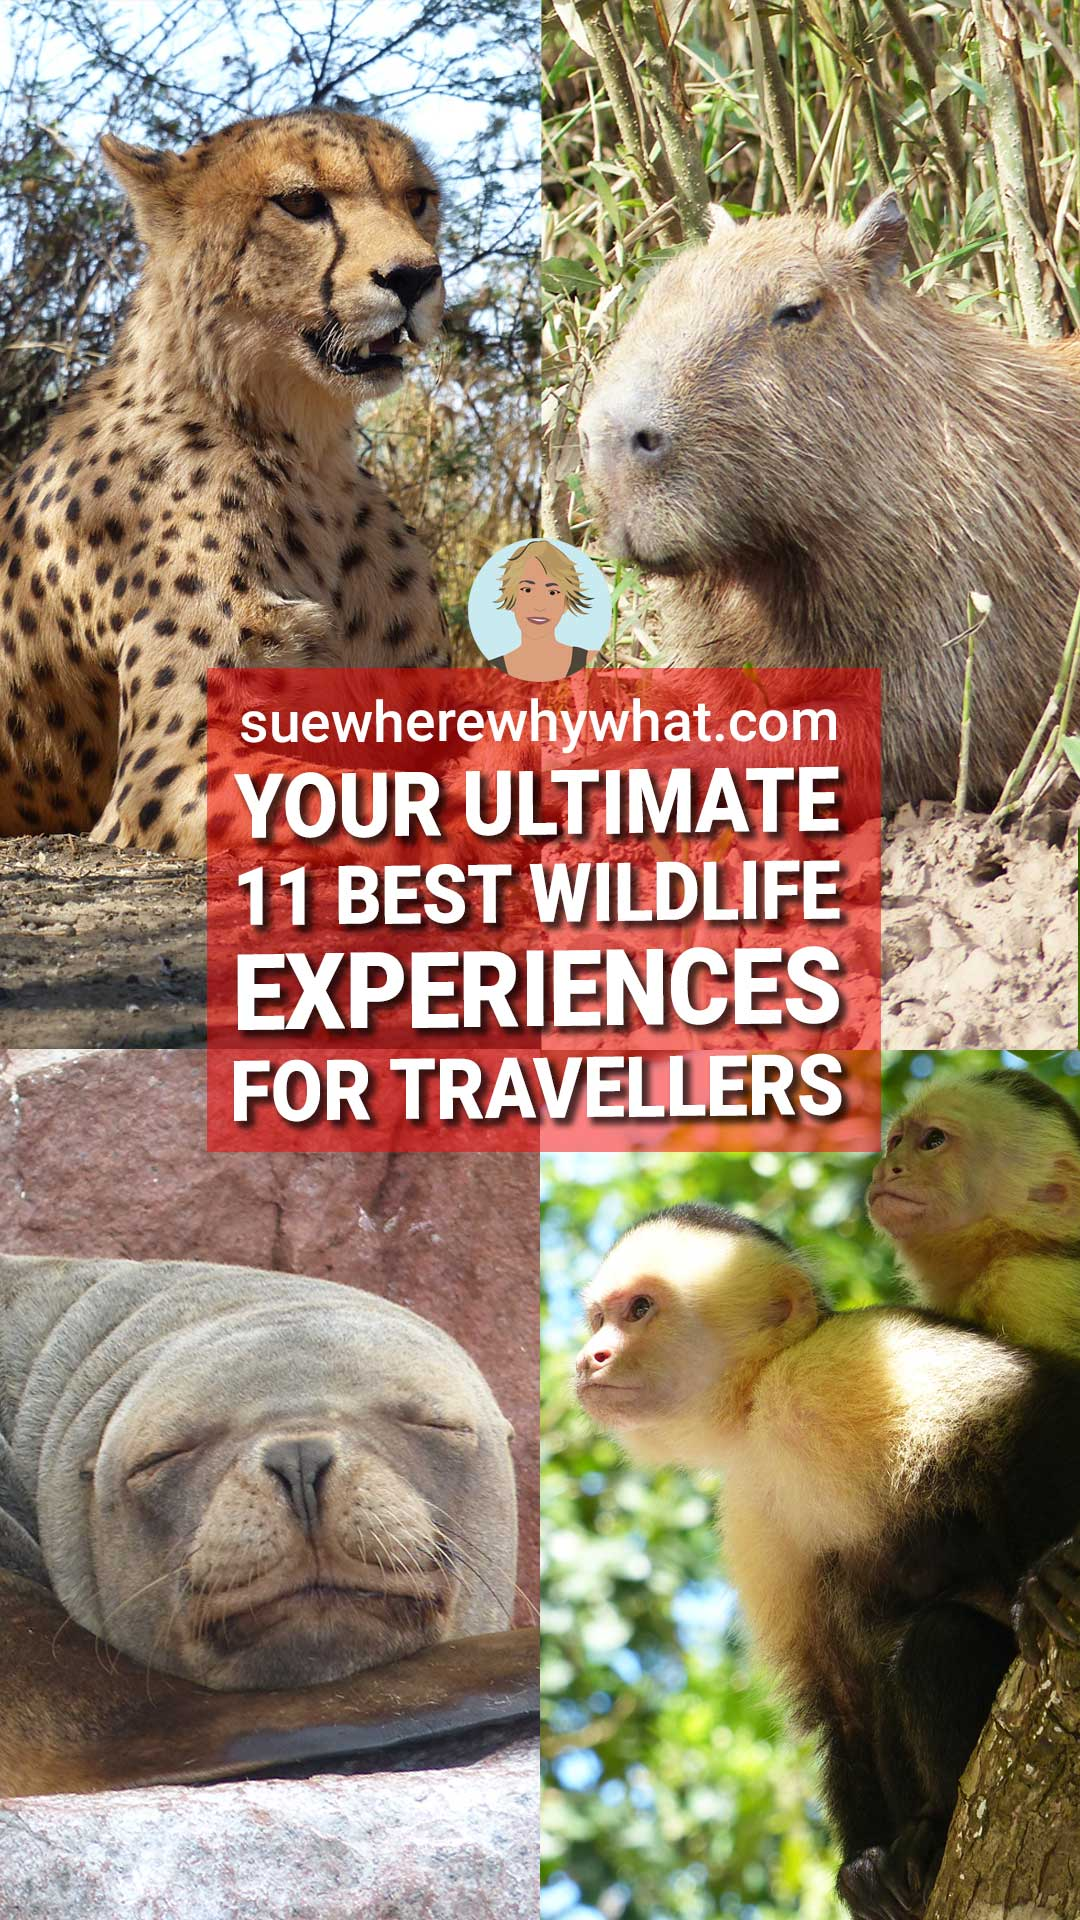 Top 11 Wildlife Experiences in the World